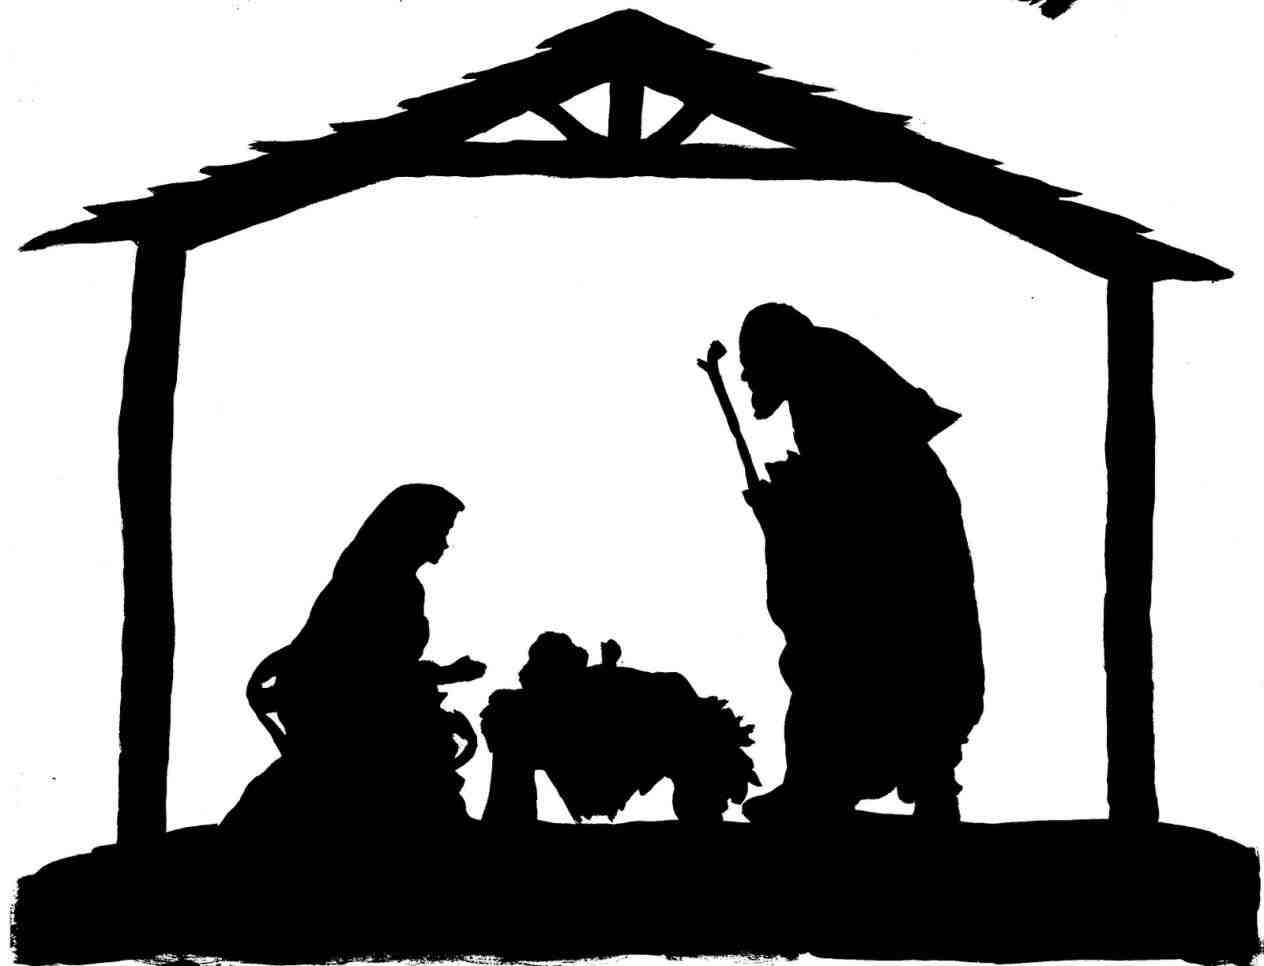 Nativity scene clipart black white vector royalty free download Free Clipart Nativity Scene | Free download best Free Clipart ... vector royalty free download